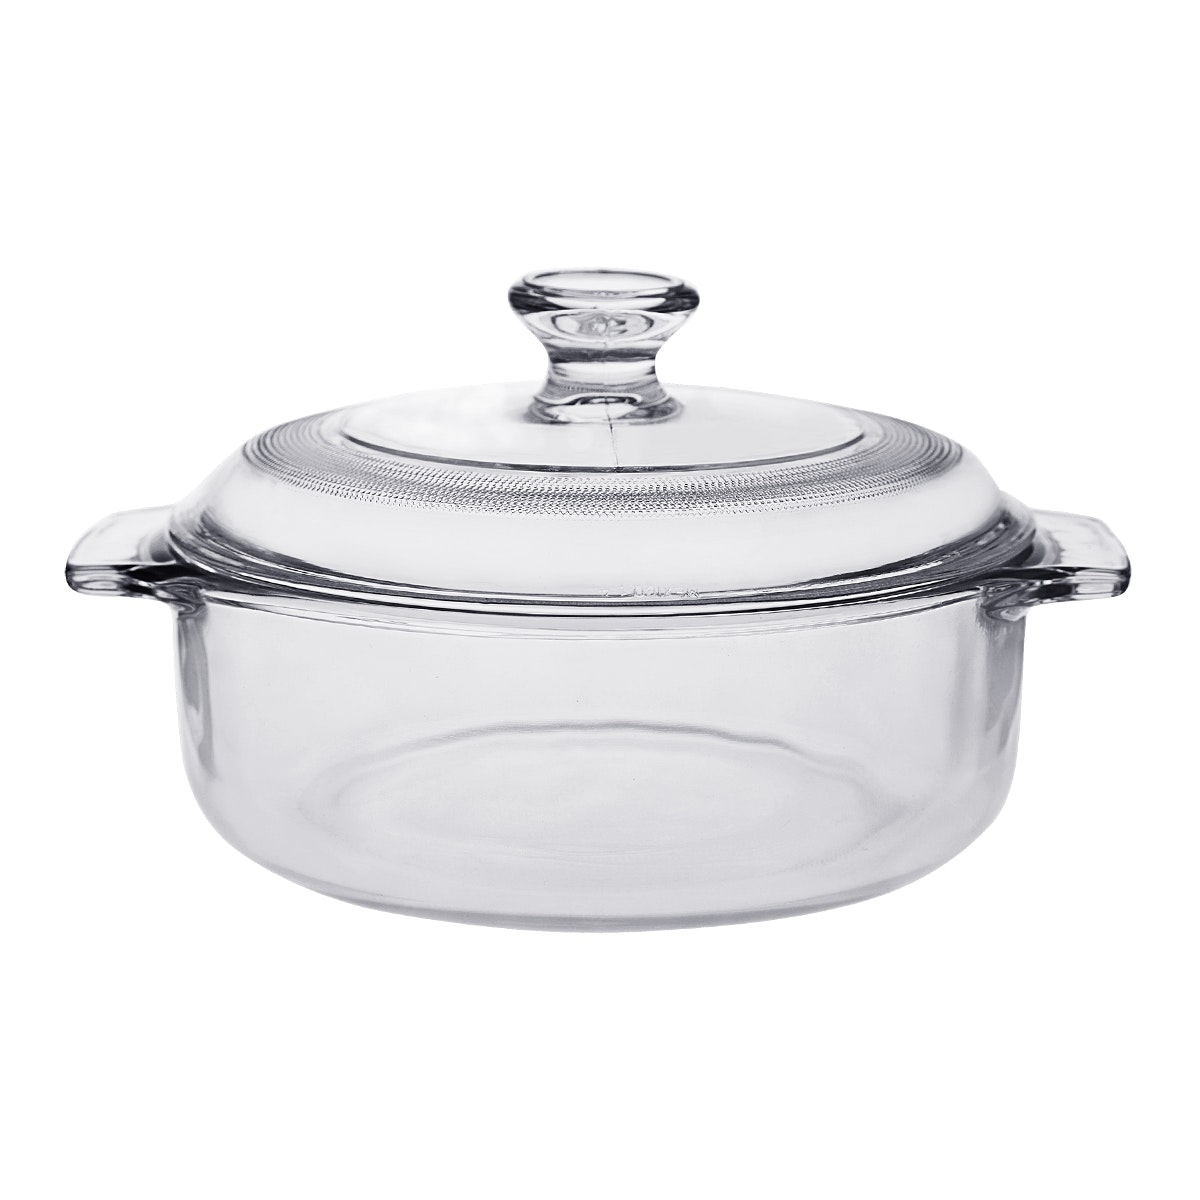 Pyr-O-Rey Small Multi Purpose Casserole W/ Small Glass Lid 1Lt